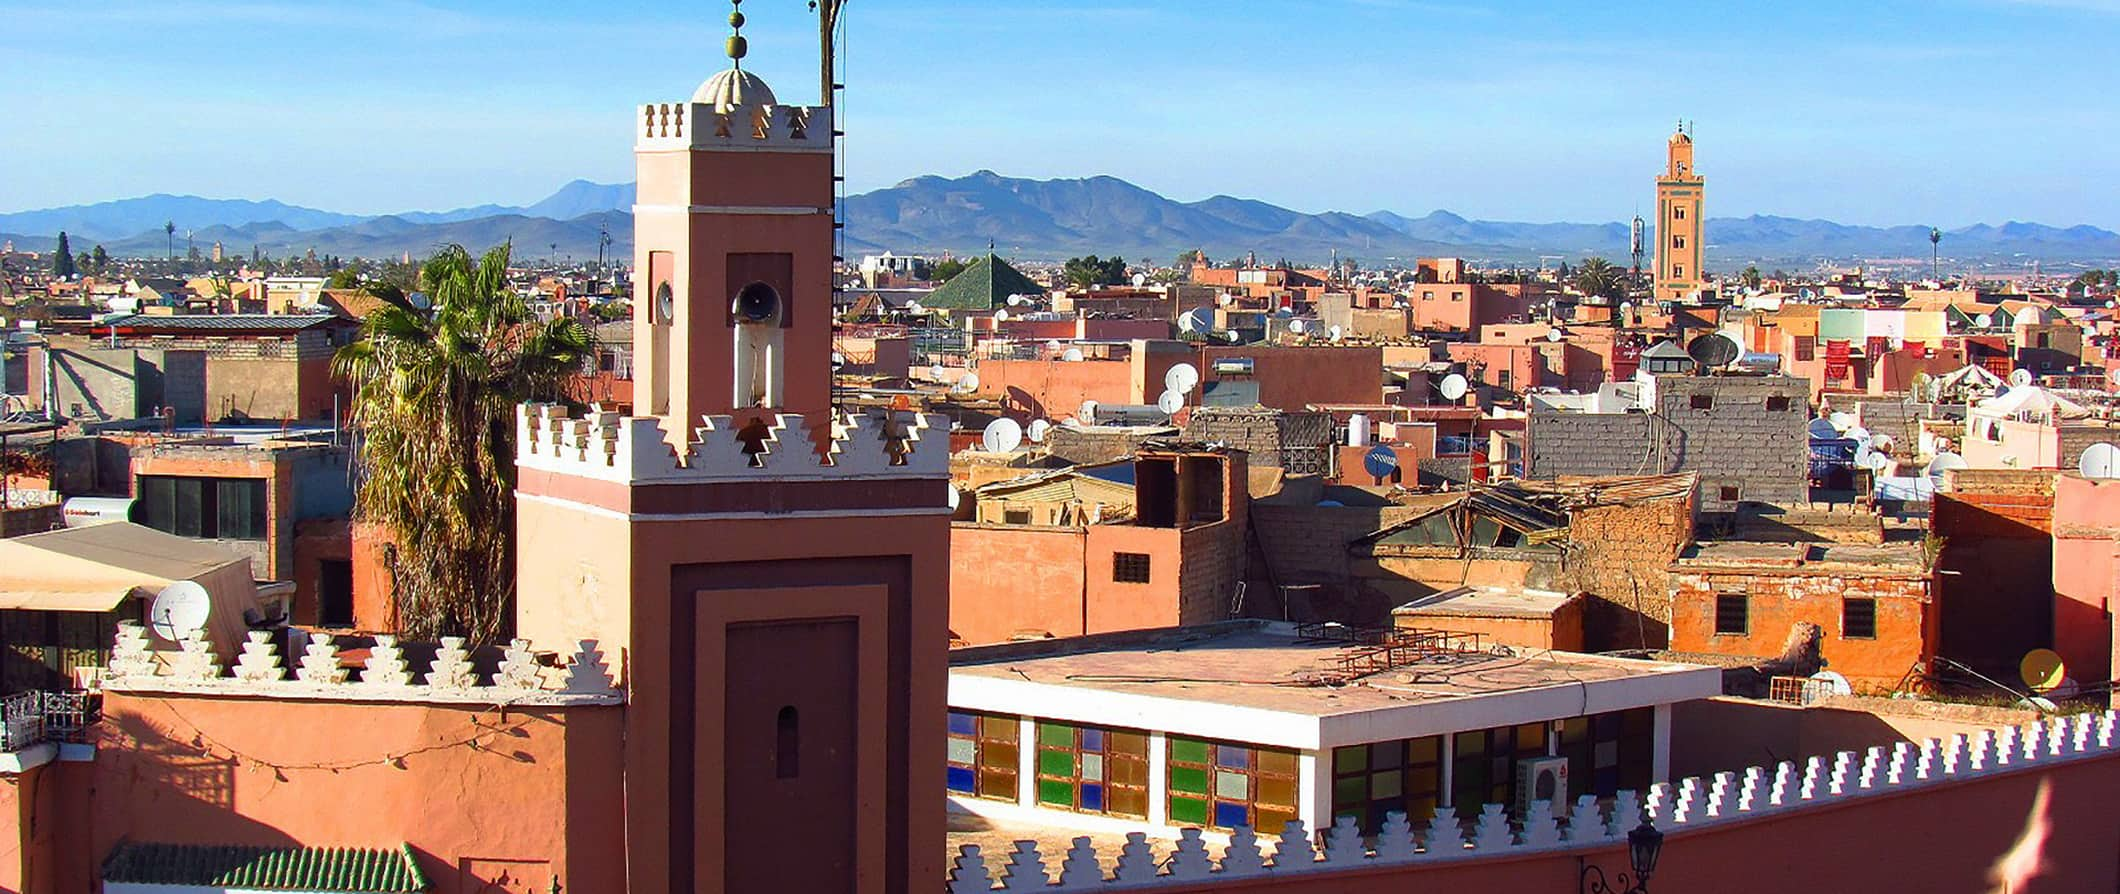 city view of Marrakesh, Morocco